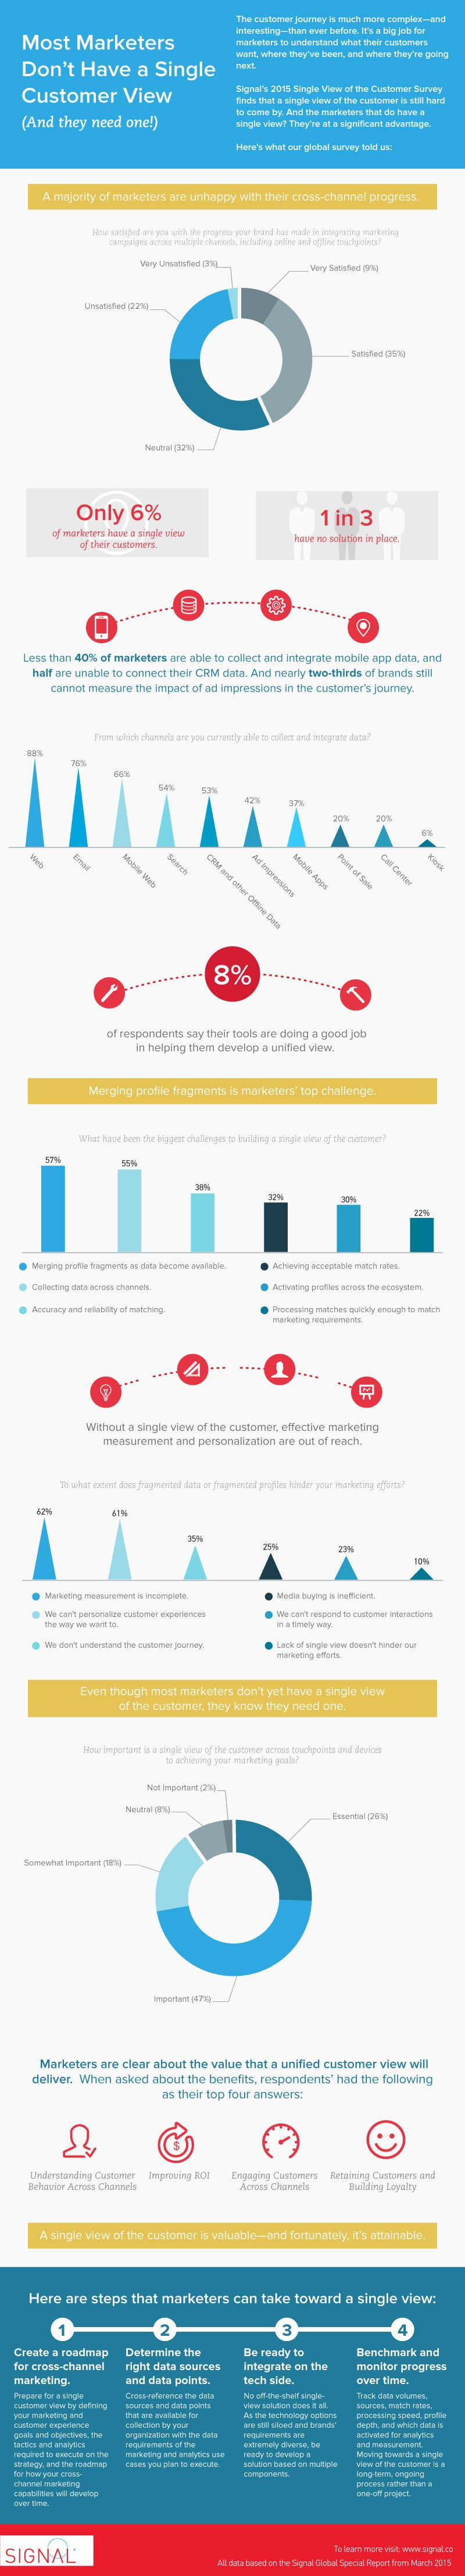 Study Reveals Cross Channel Marketing Challenges (Infographic)